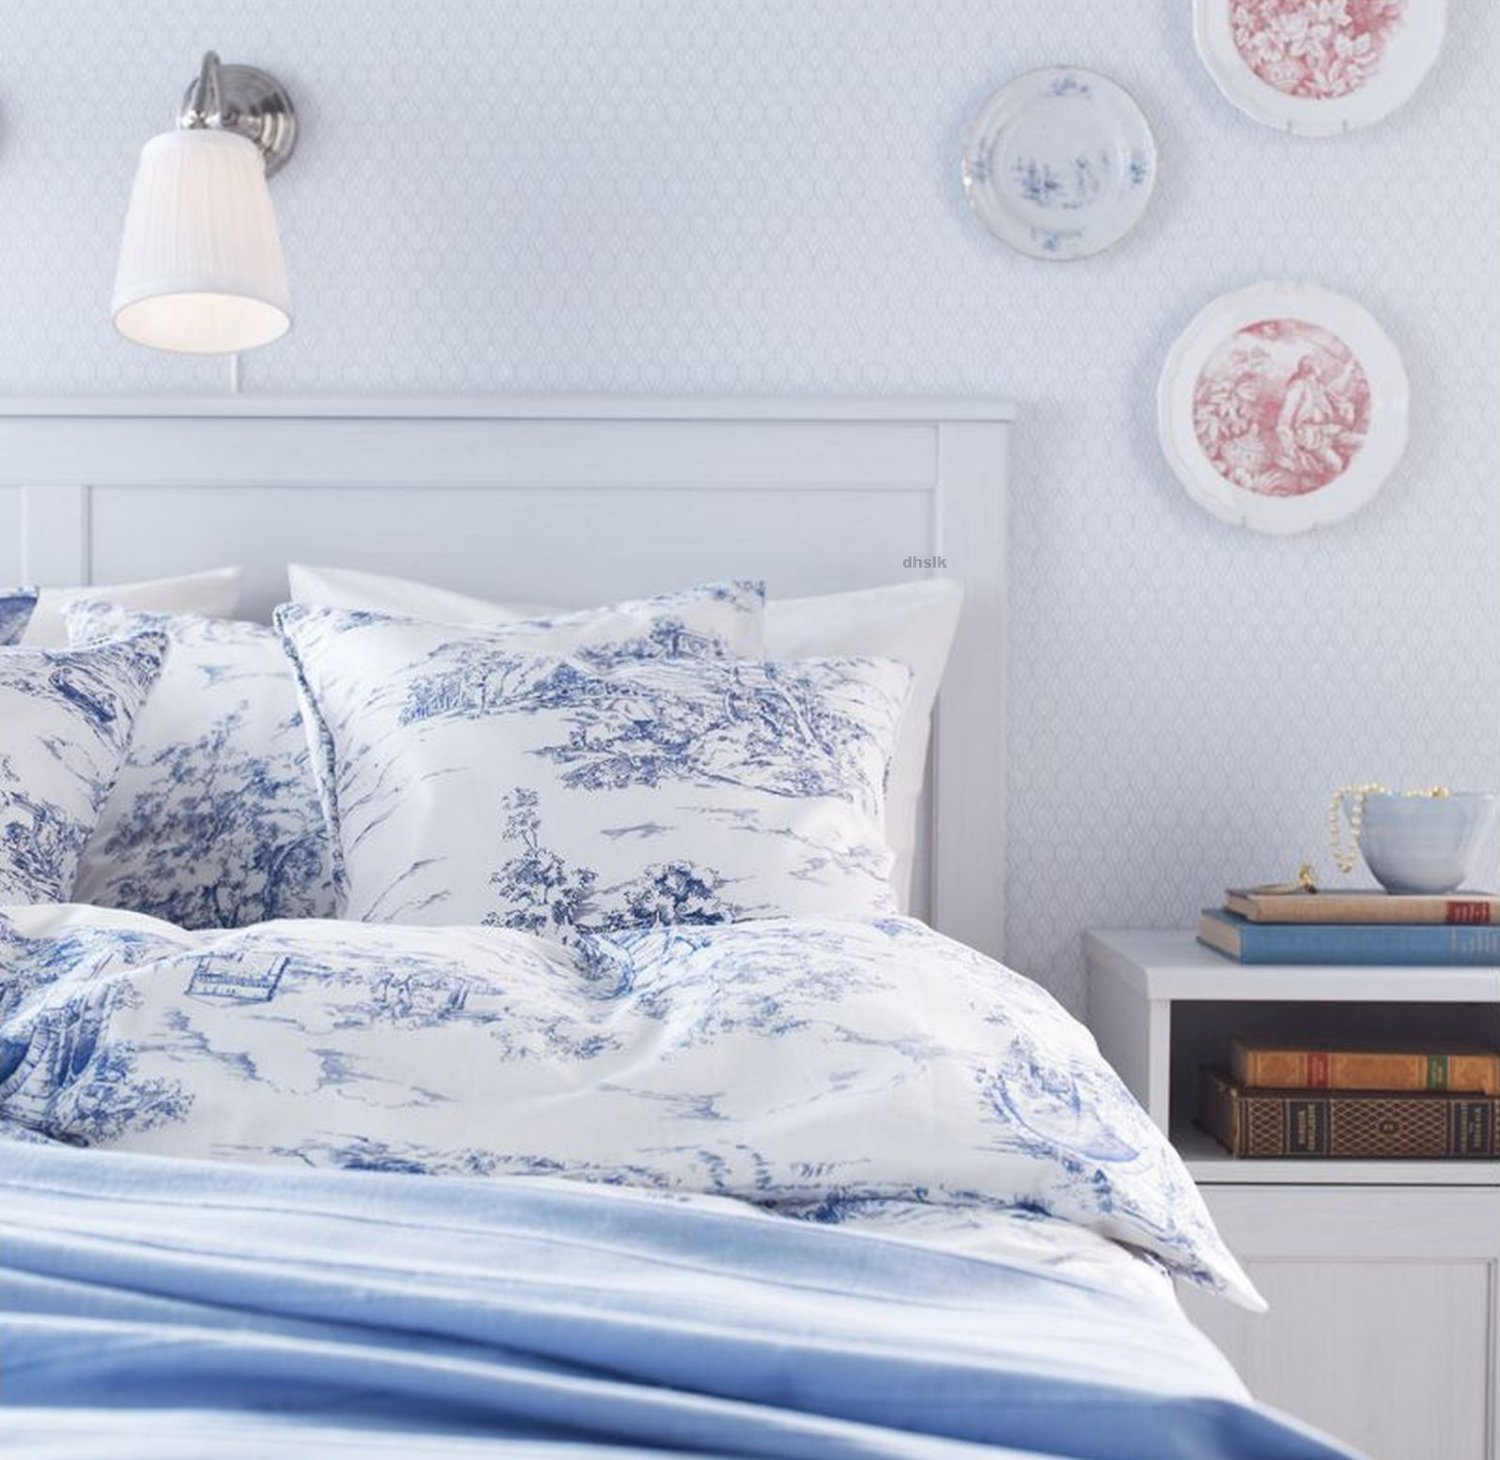 Ikea emmie land queen duvet cover pillowcases set blue for Parure housse de couette ikea